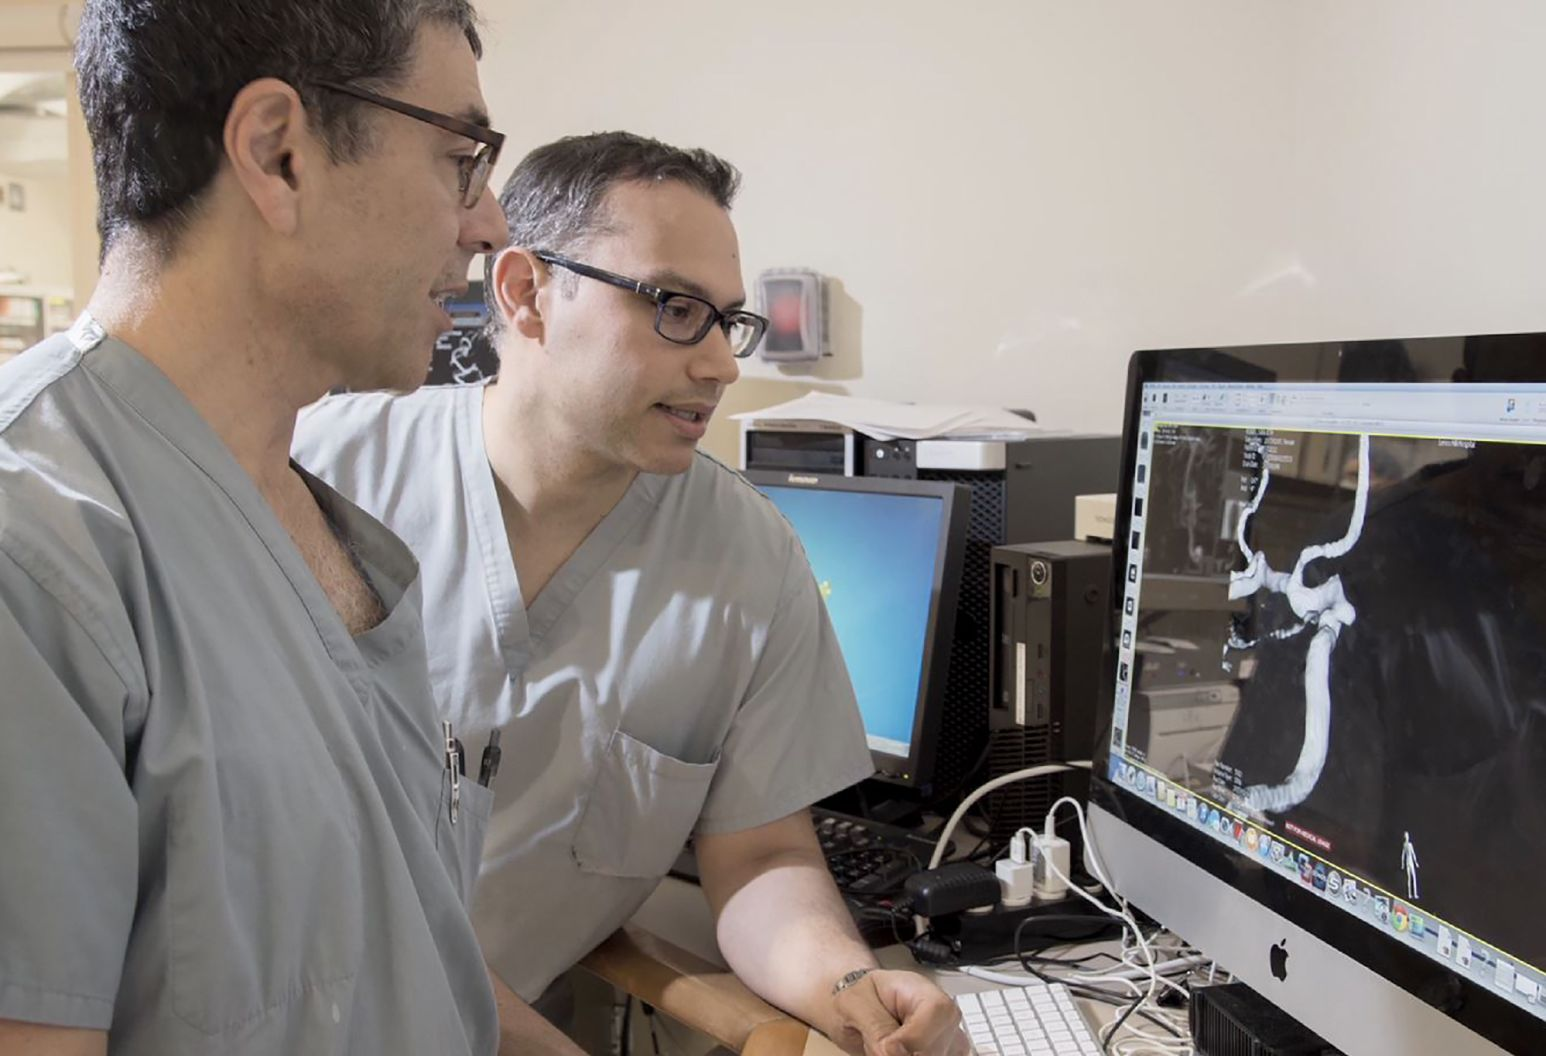 Two male doctors wearing scrubs discuss a scan they are looking at on a monitor